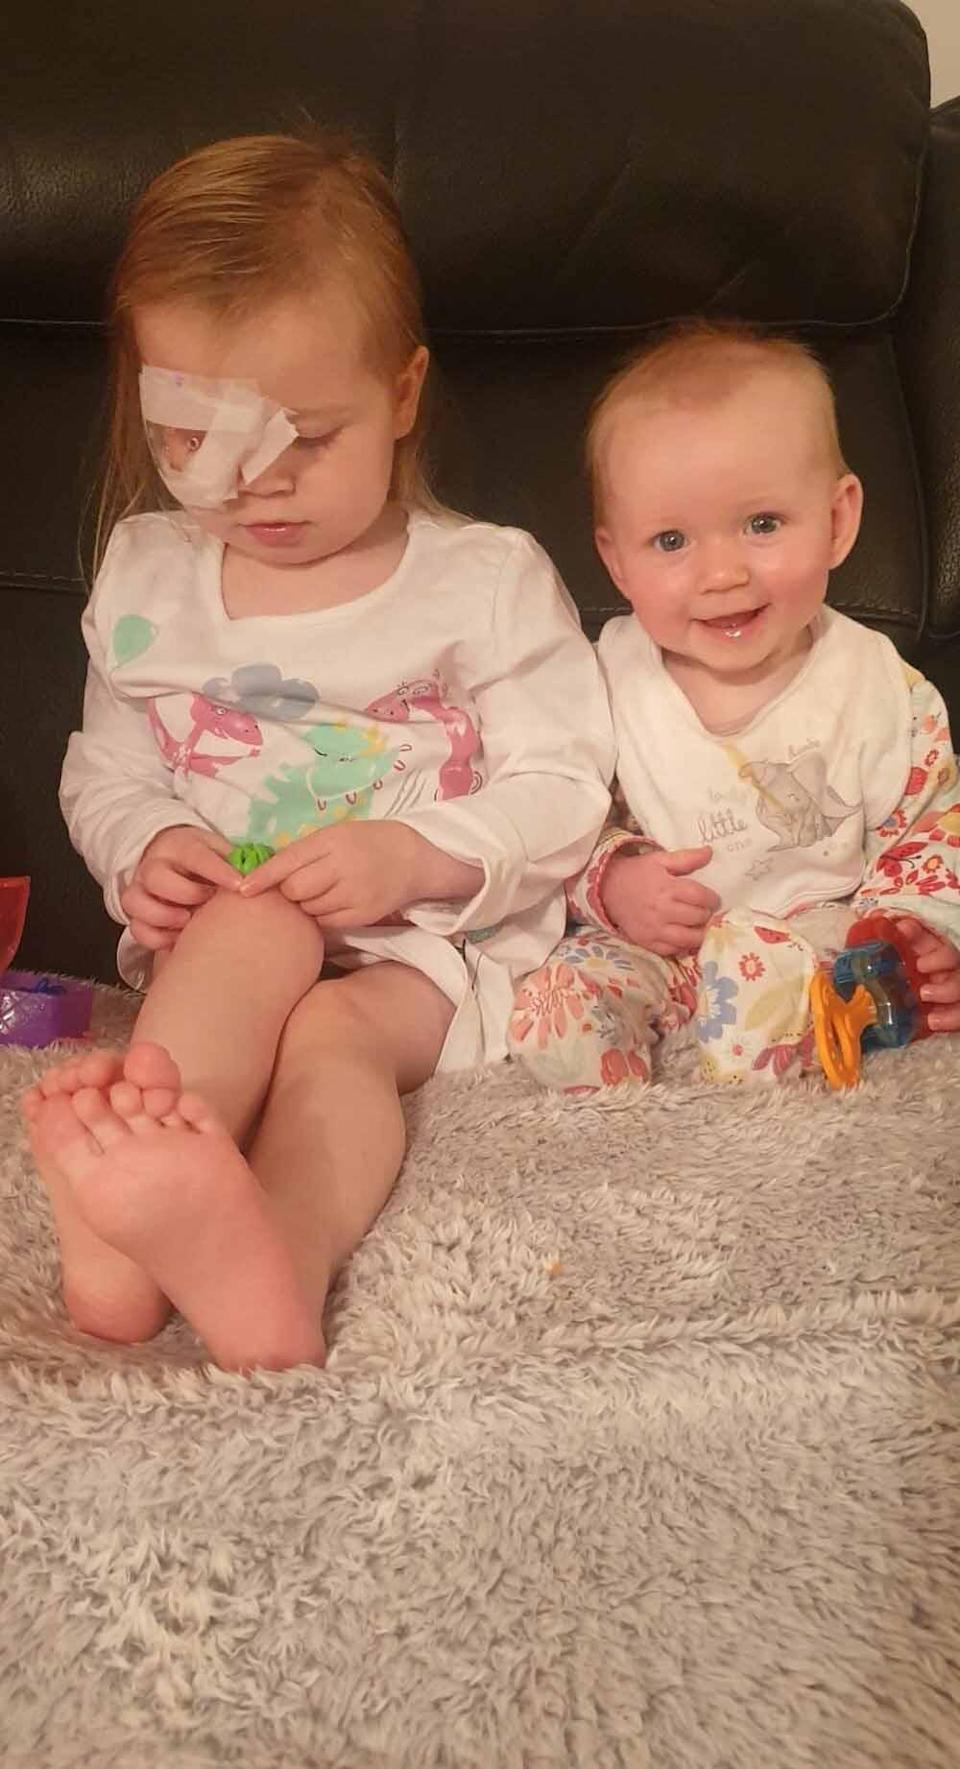 Evie seeing her sister Olivia again after four days in hospital. PA REAL LIFE COLLECT